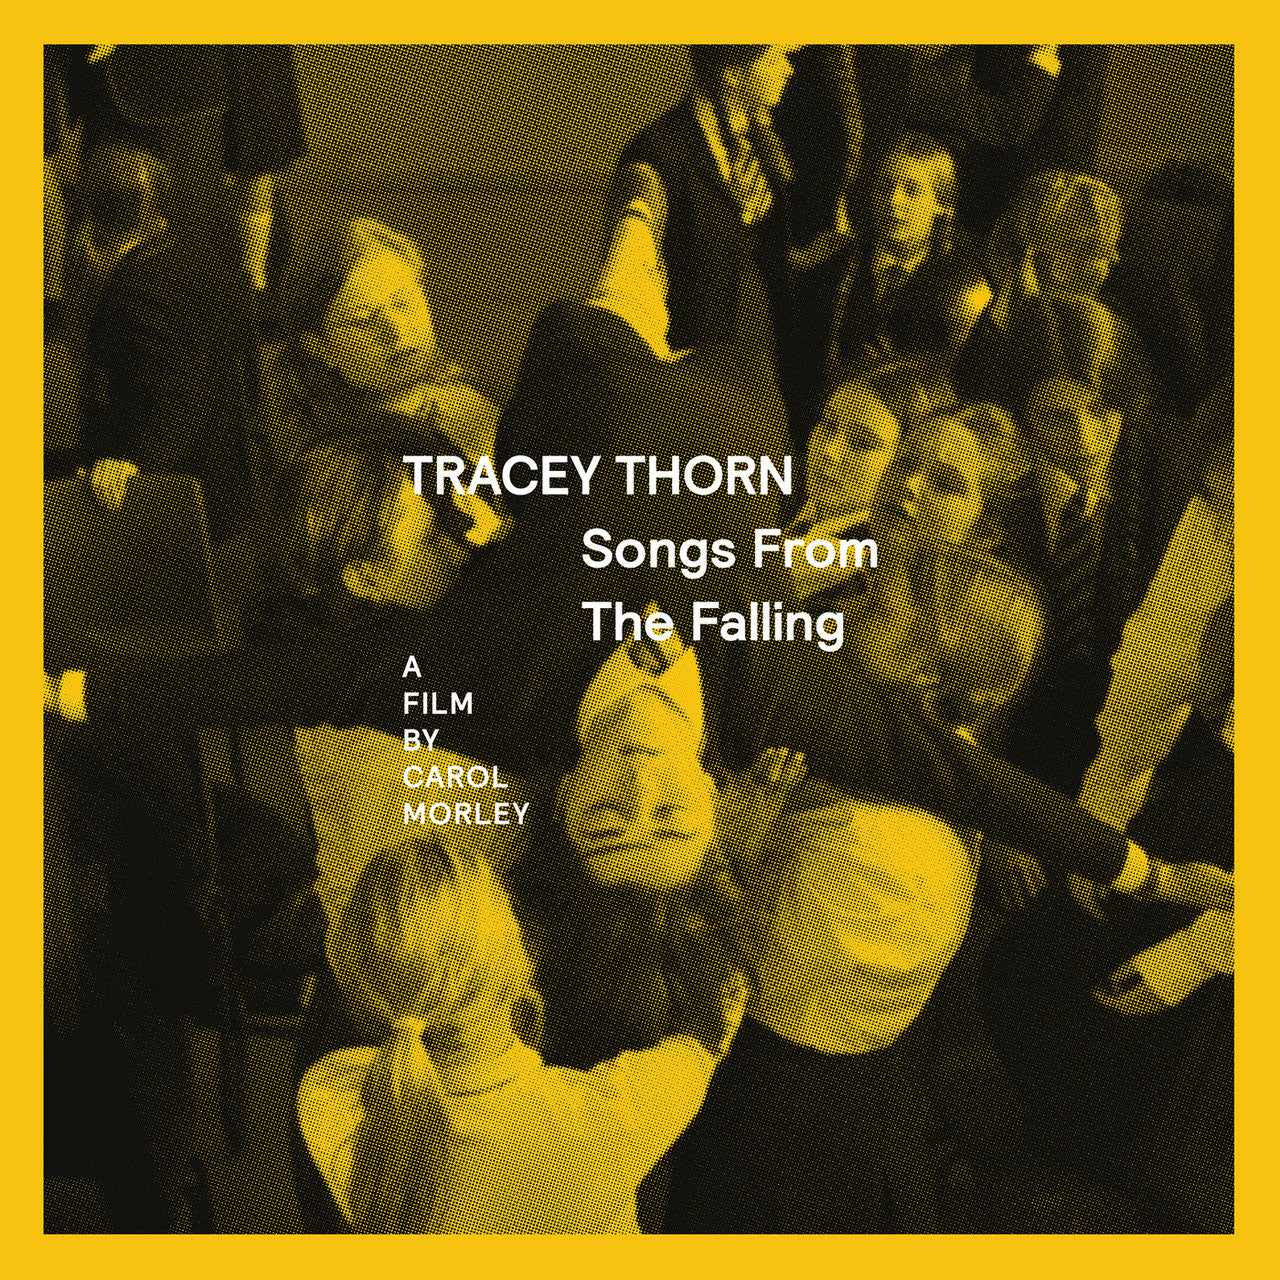 Tracey Thorn - Songs from The Falling (CD)